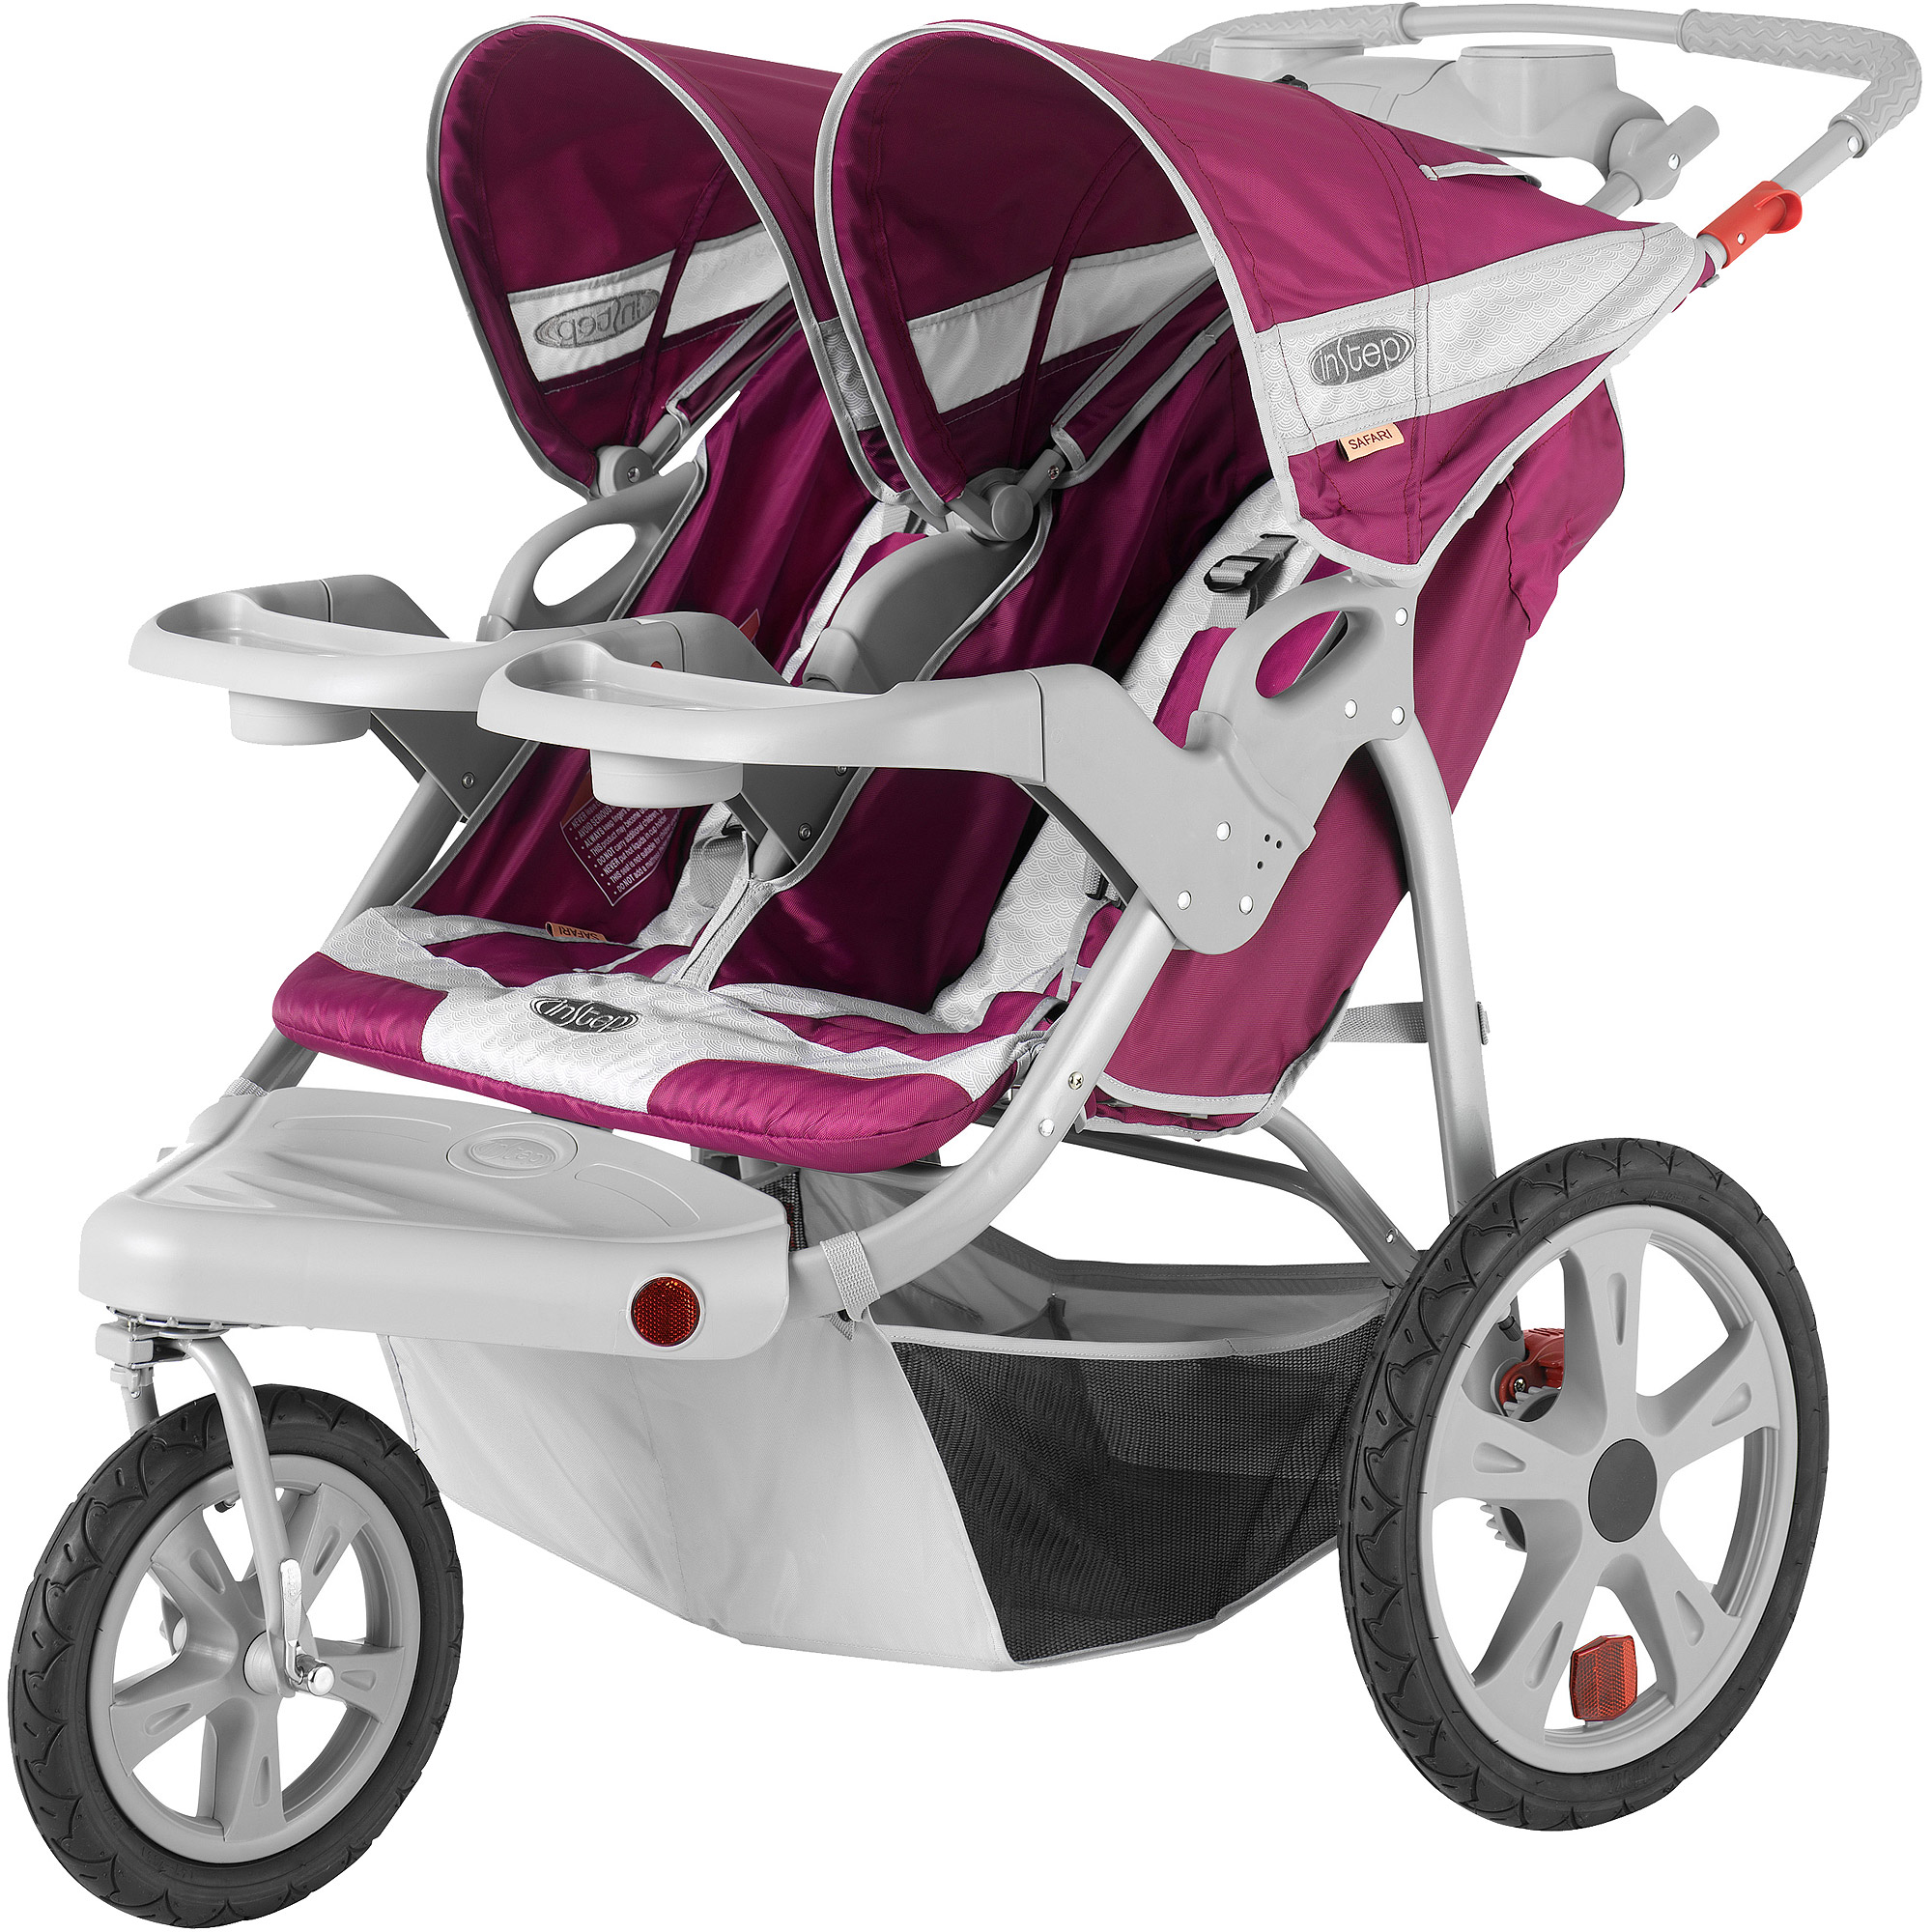 Double Stroller Expensive Instep Safari Double Jogging Stroller